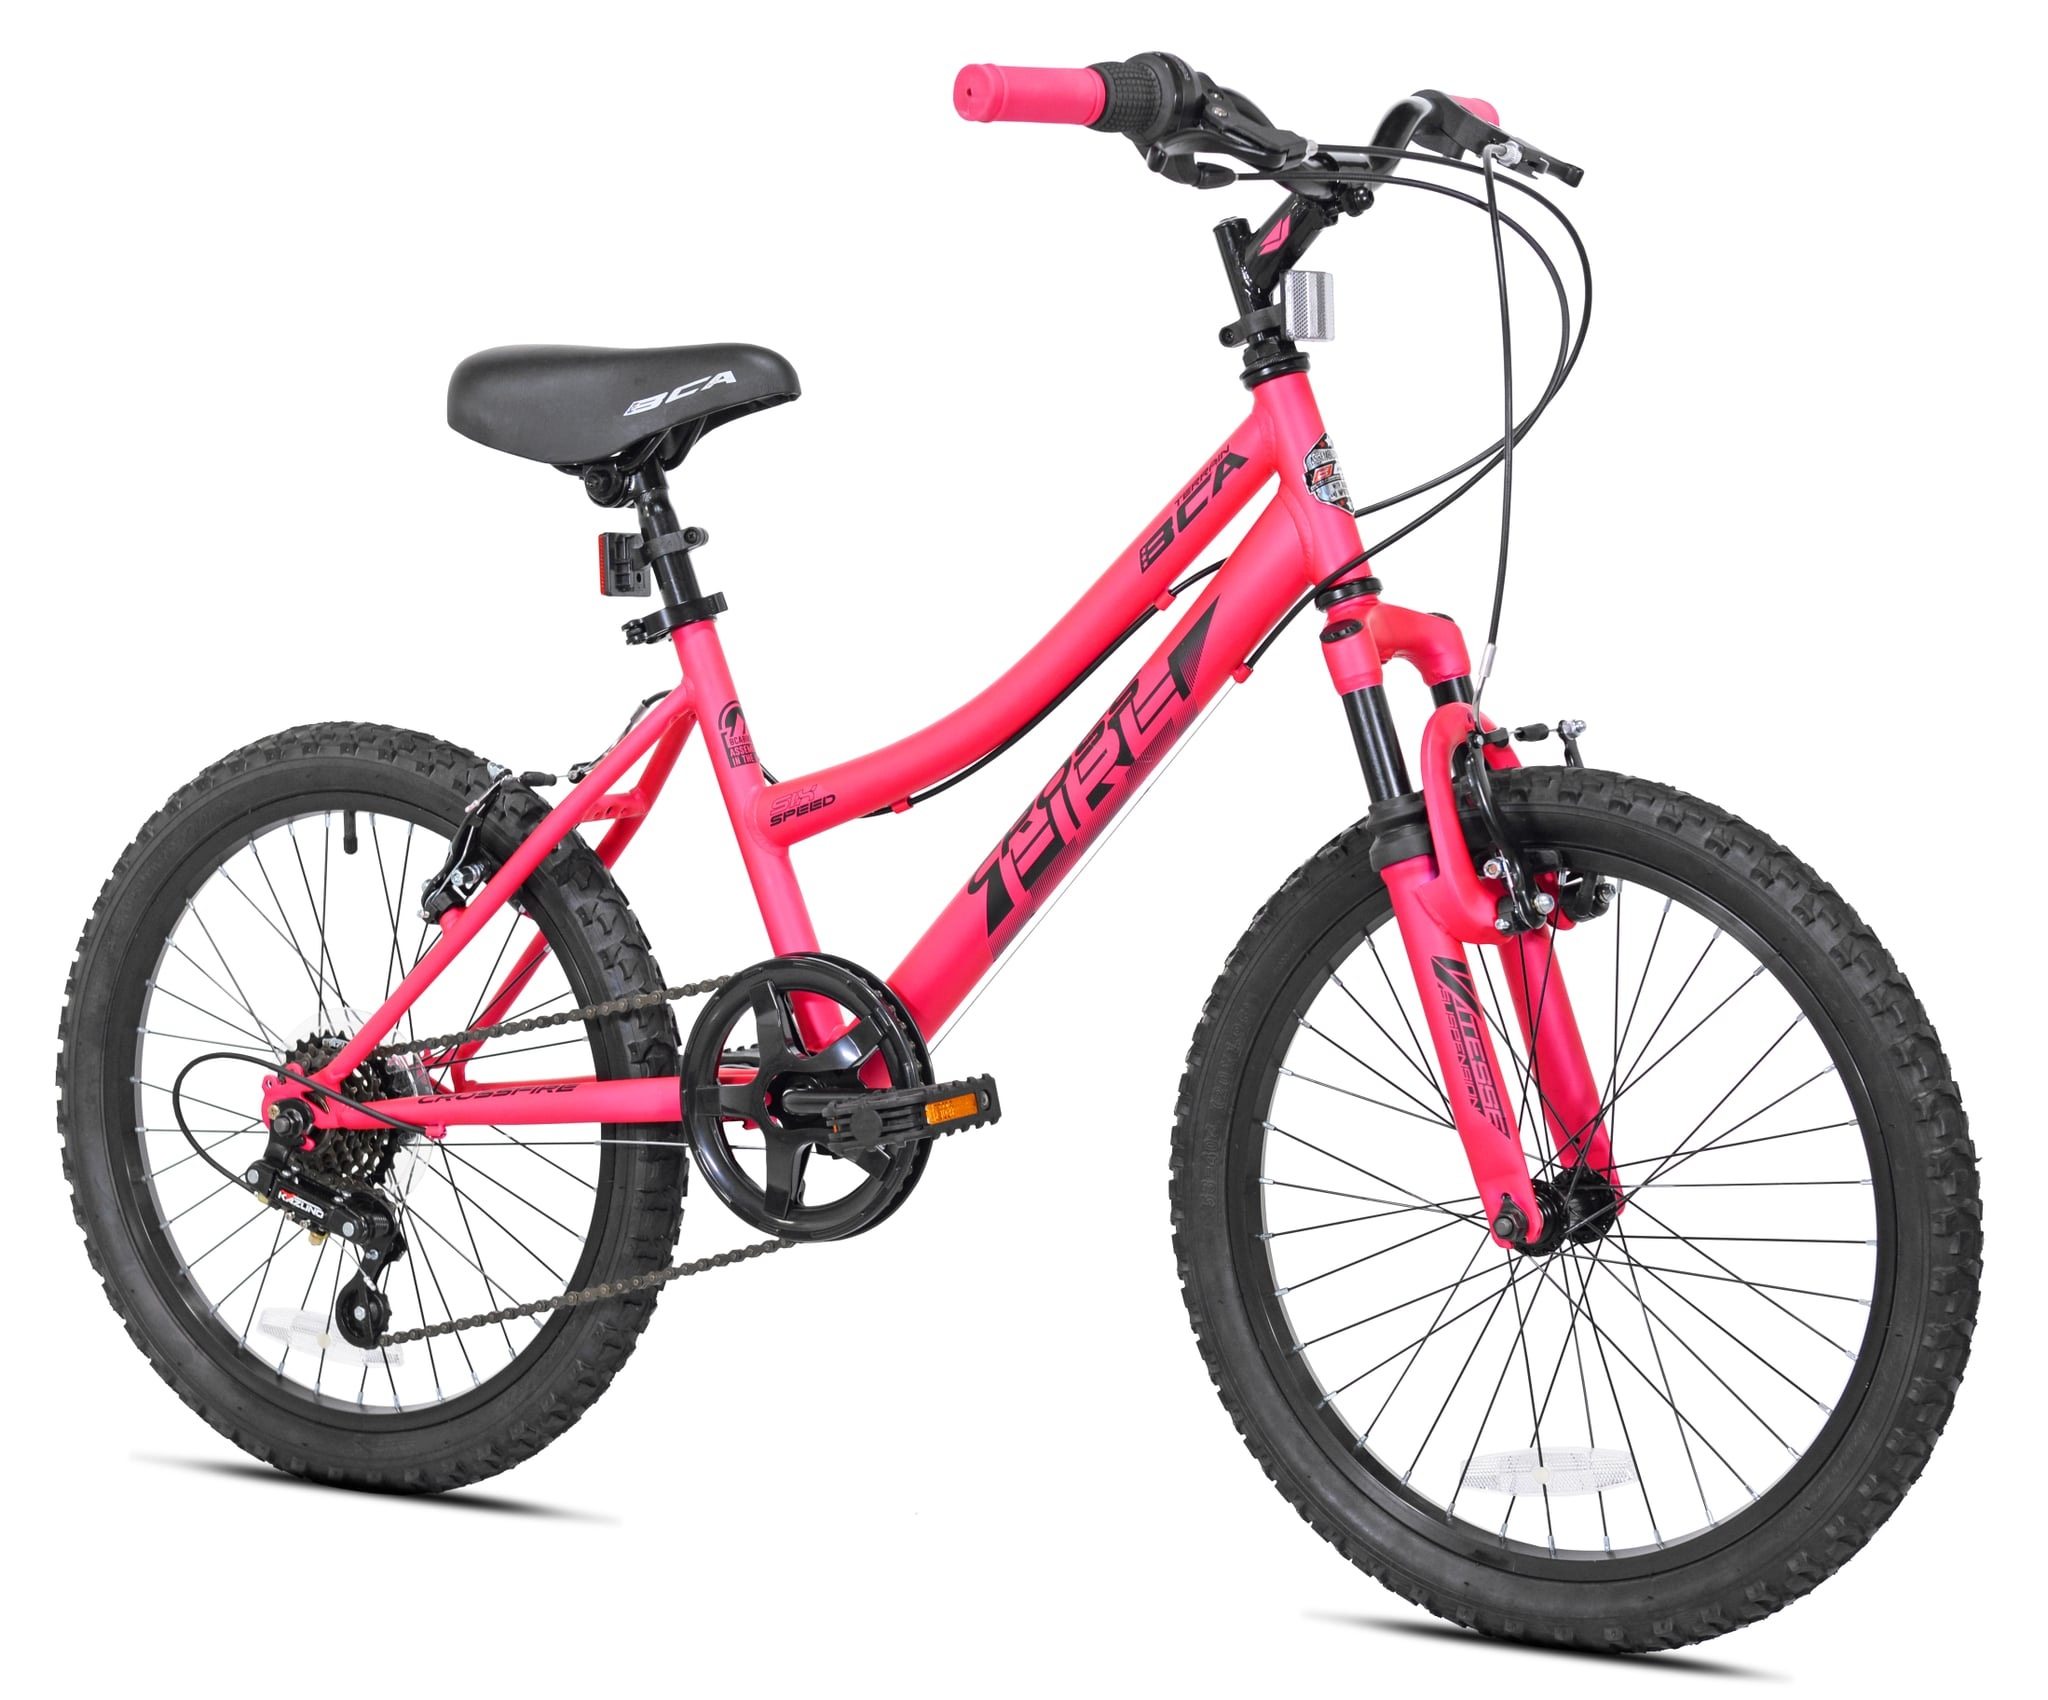 Shop Kid Bikes Still Available During 2020 Bicycle Shortage Popsugar Family